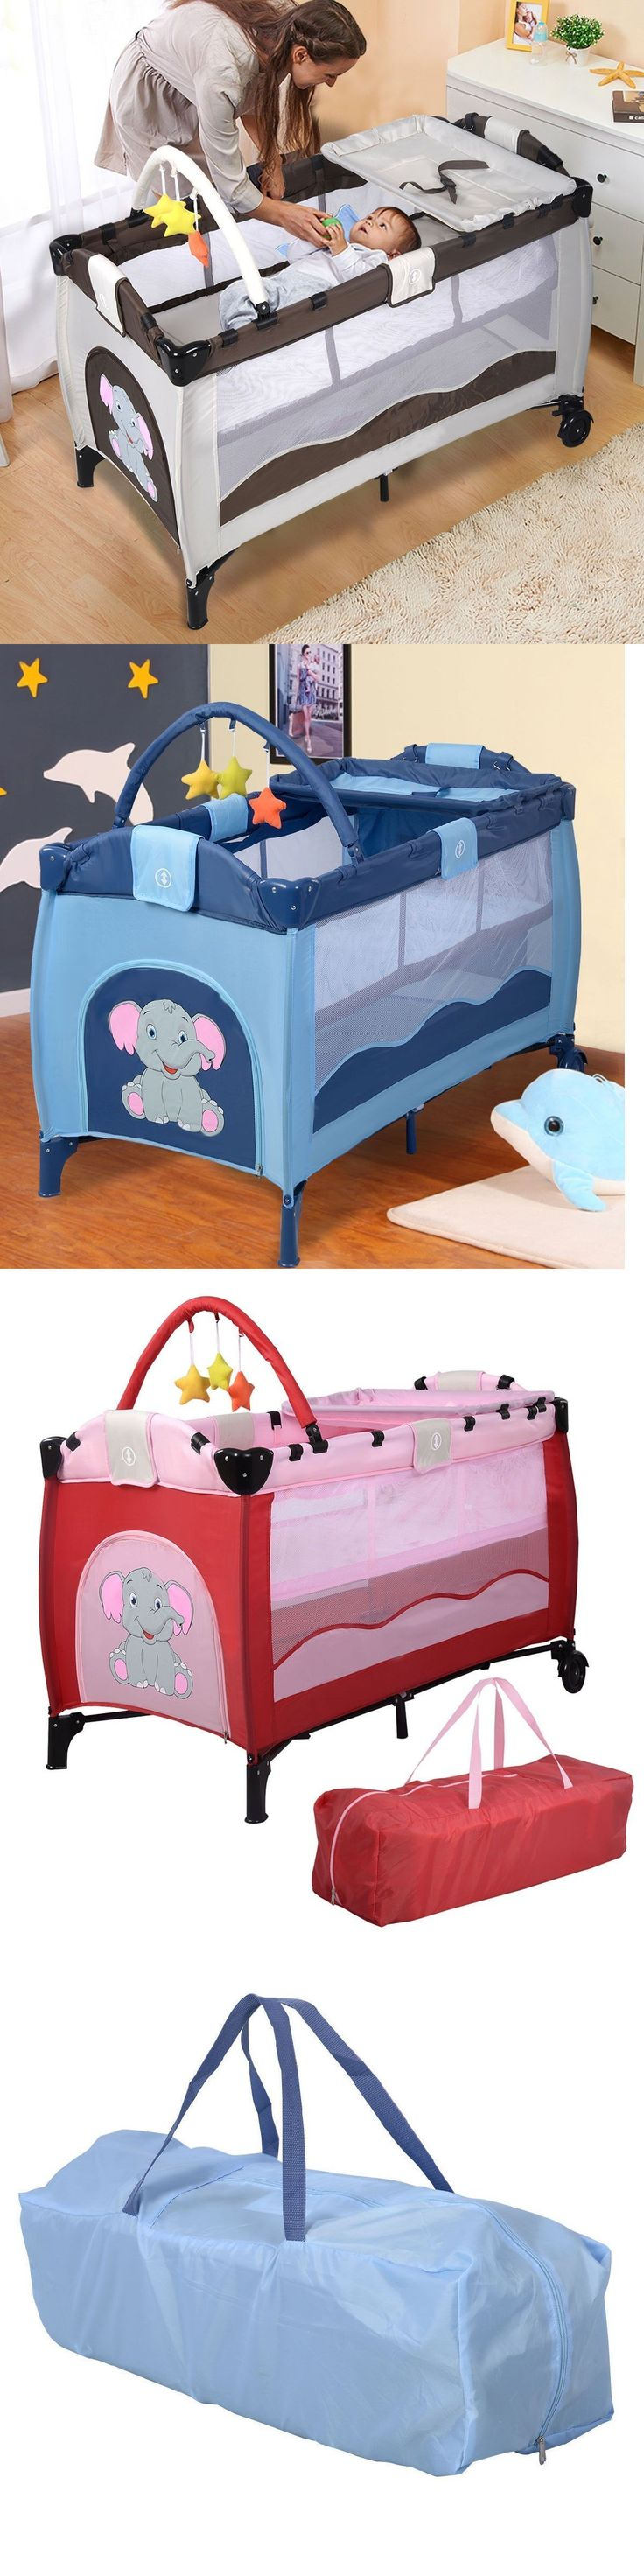 Used crib for sale ebay - Baby Nursery Portable Baby Crib Bassinet Playpen Travel Folding Bed Organizer Convertible Buy